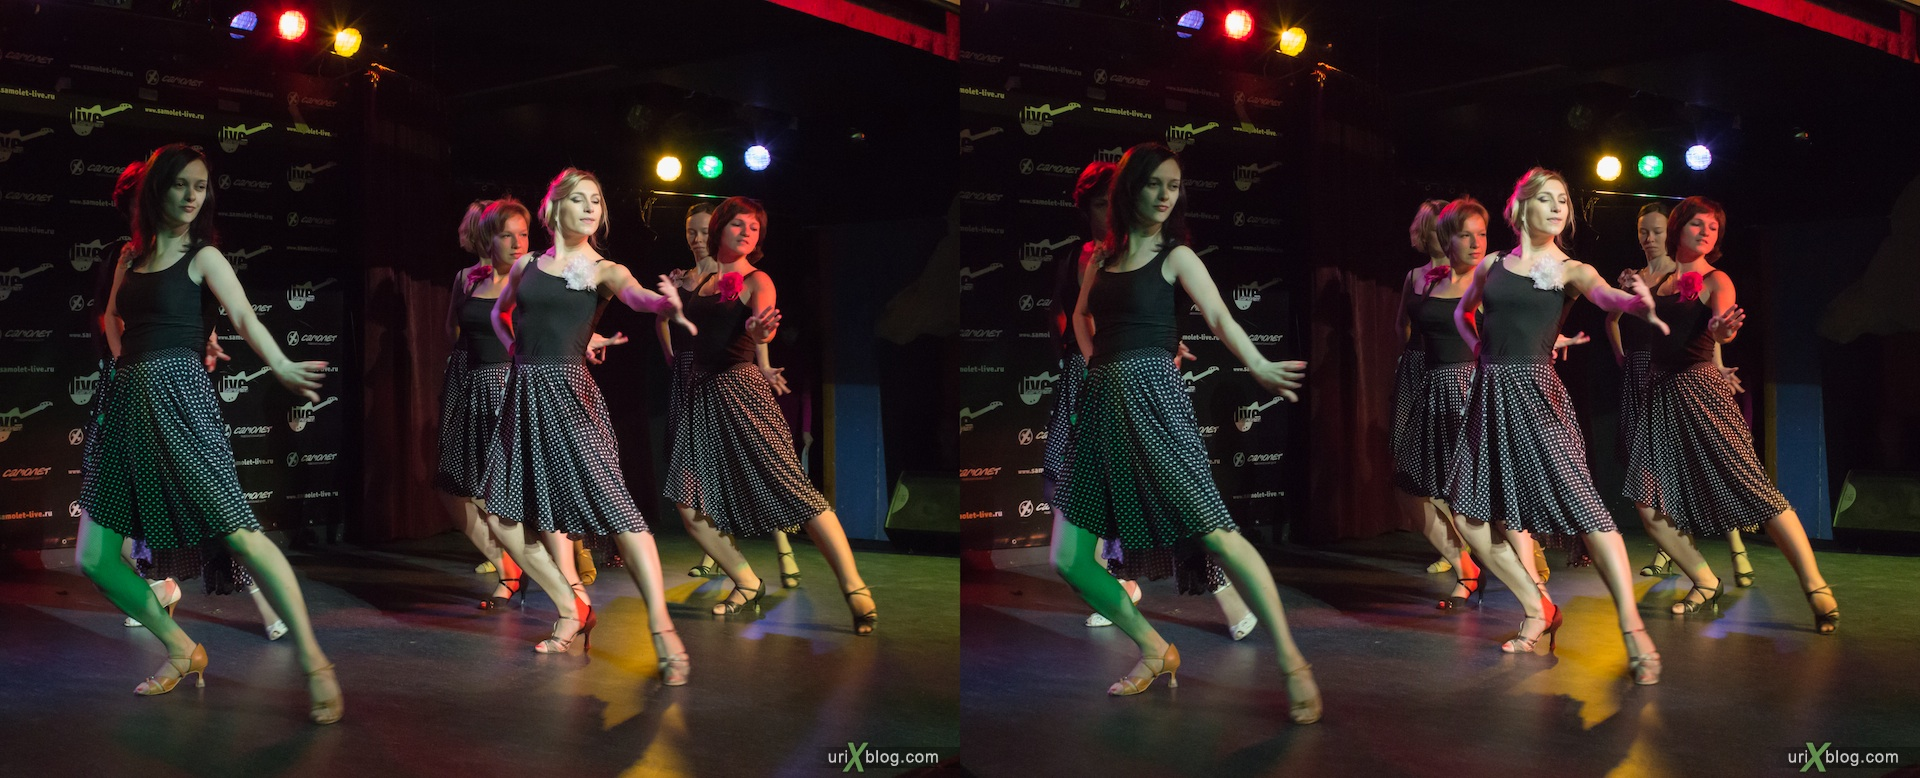 2012, dances, girls, Vesta, Airplane club, Moscow, Russia, 3D, stereo pair, cross-eyed, crossview, cross view stereo pair